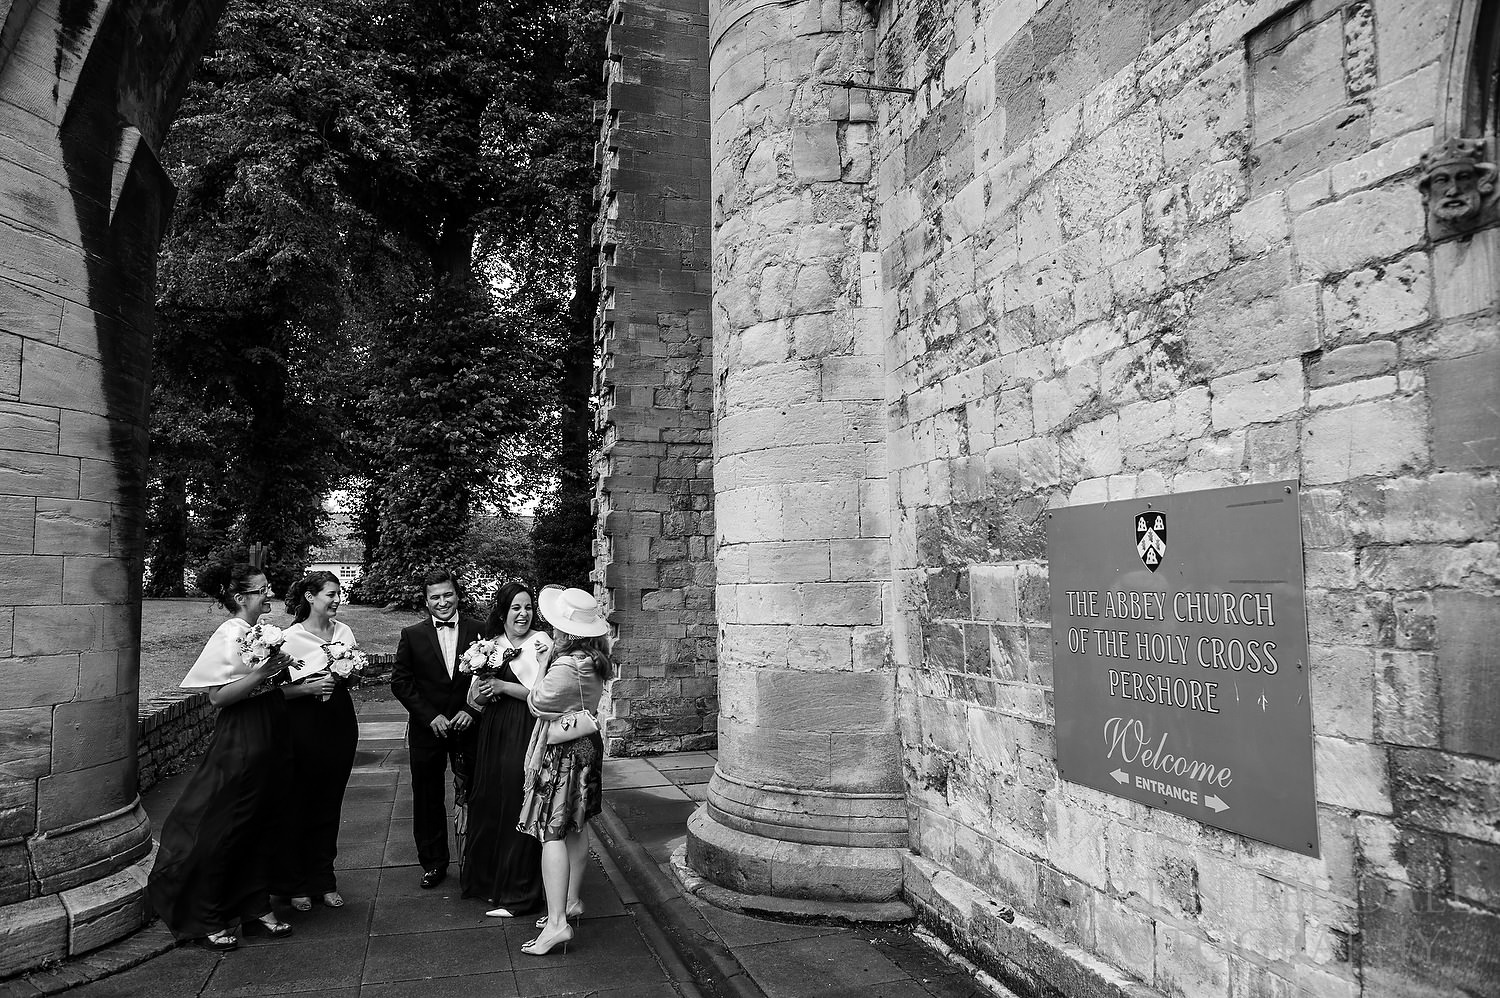 Bridesmaids wait outside the Abbey Church of the Holy Cross Pershore